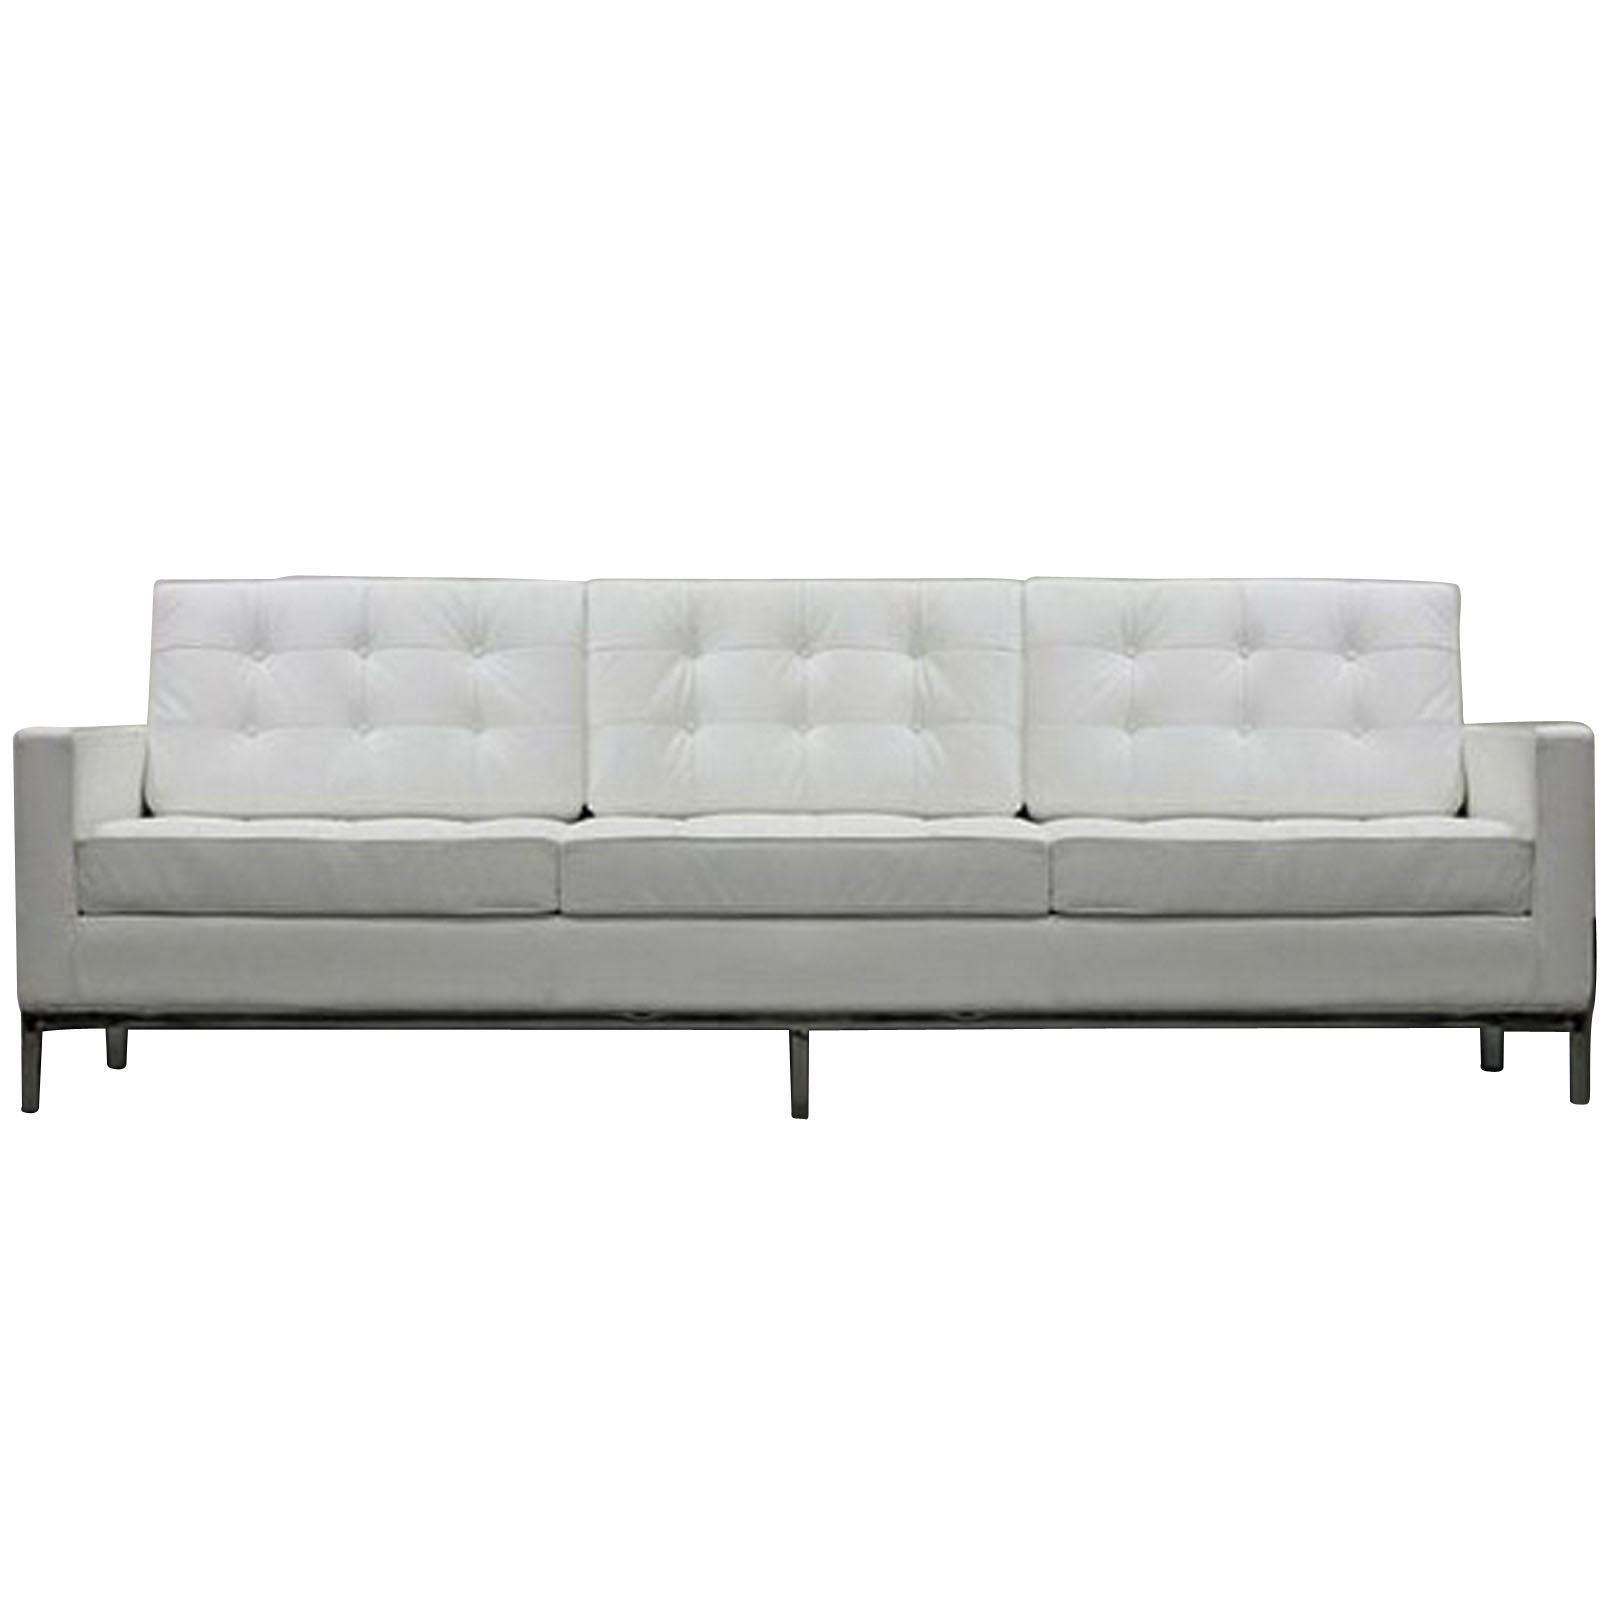 Latest Florence Knoll Style Sofa Couch – Leather In Florence Knoll Style Sofas (View 15 of 20)